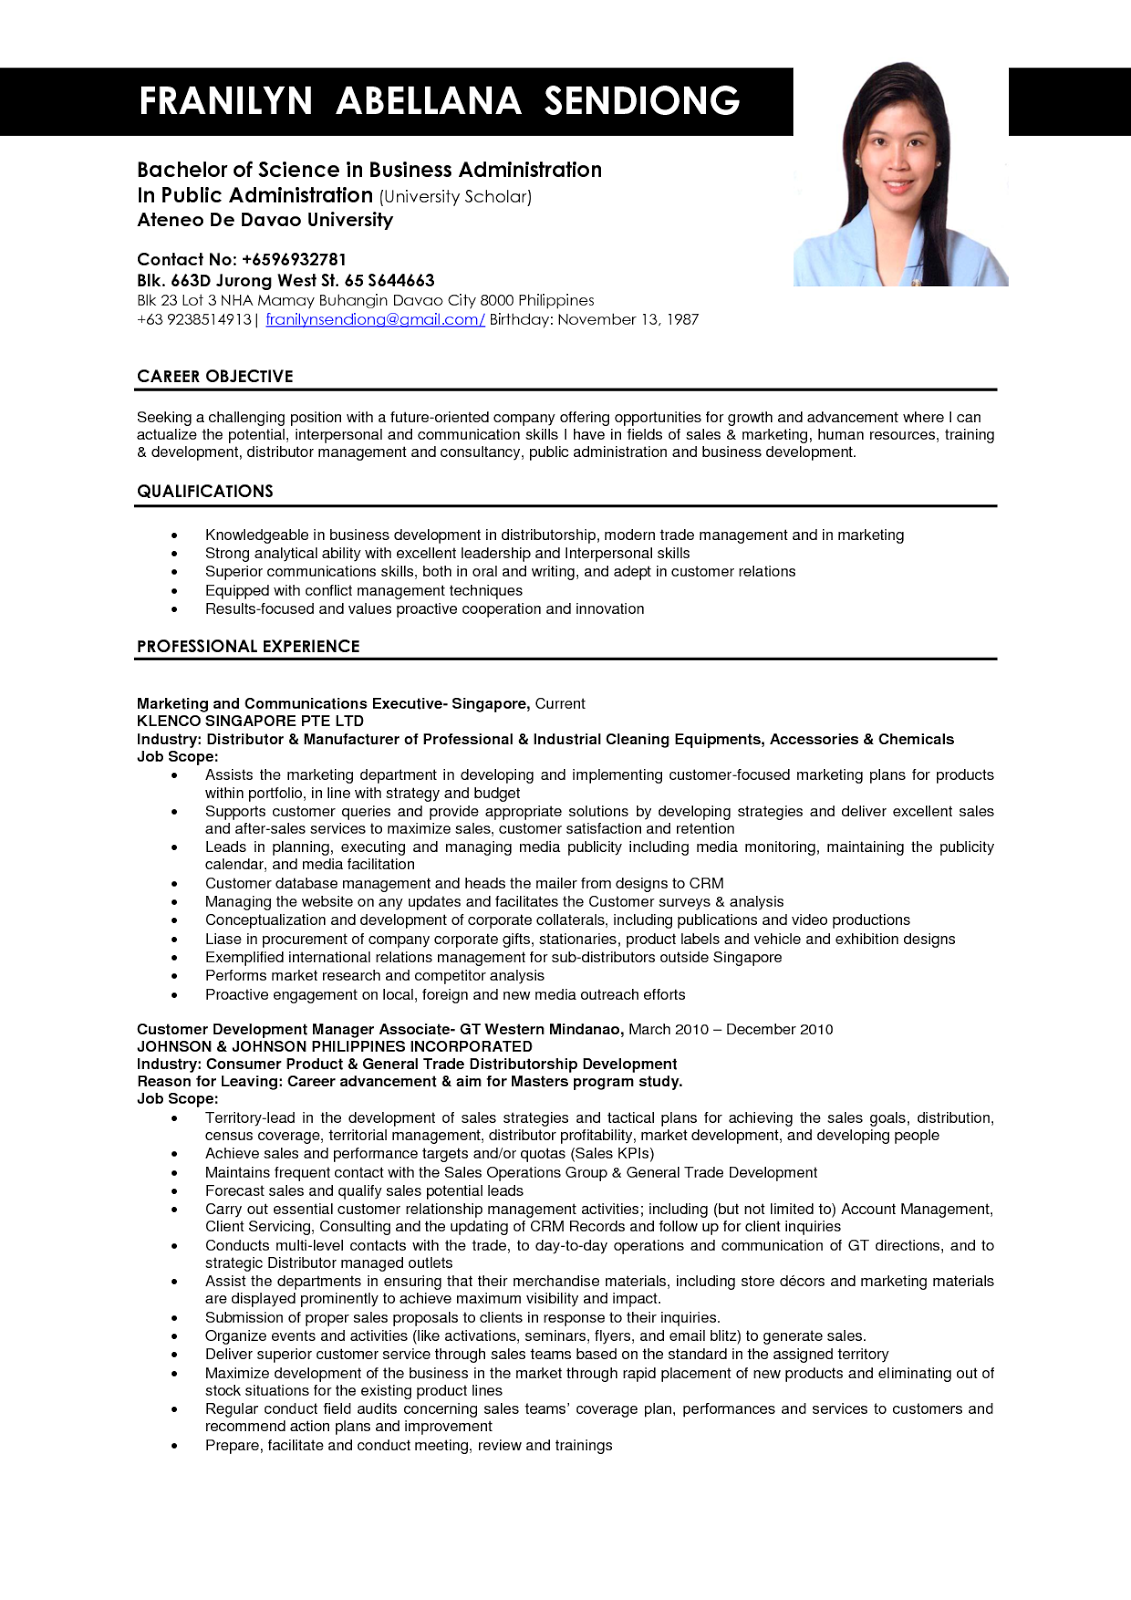 Samples Of A Resume